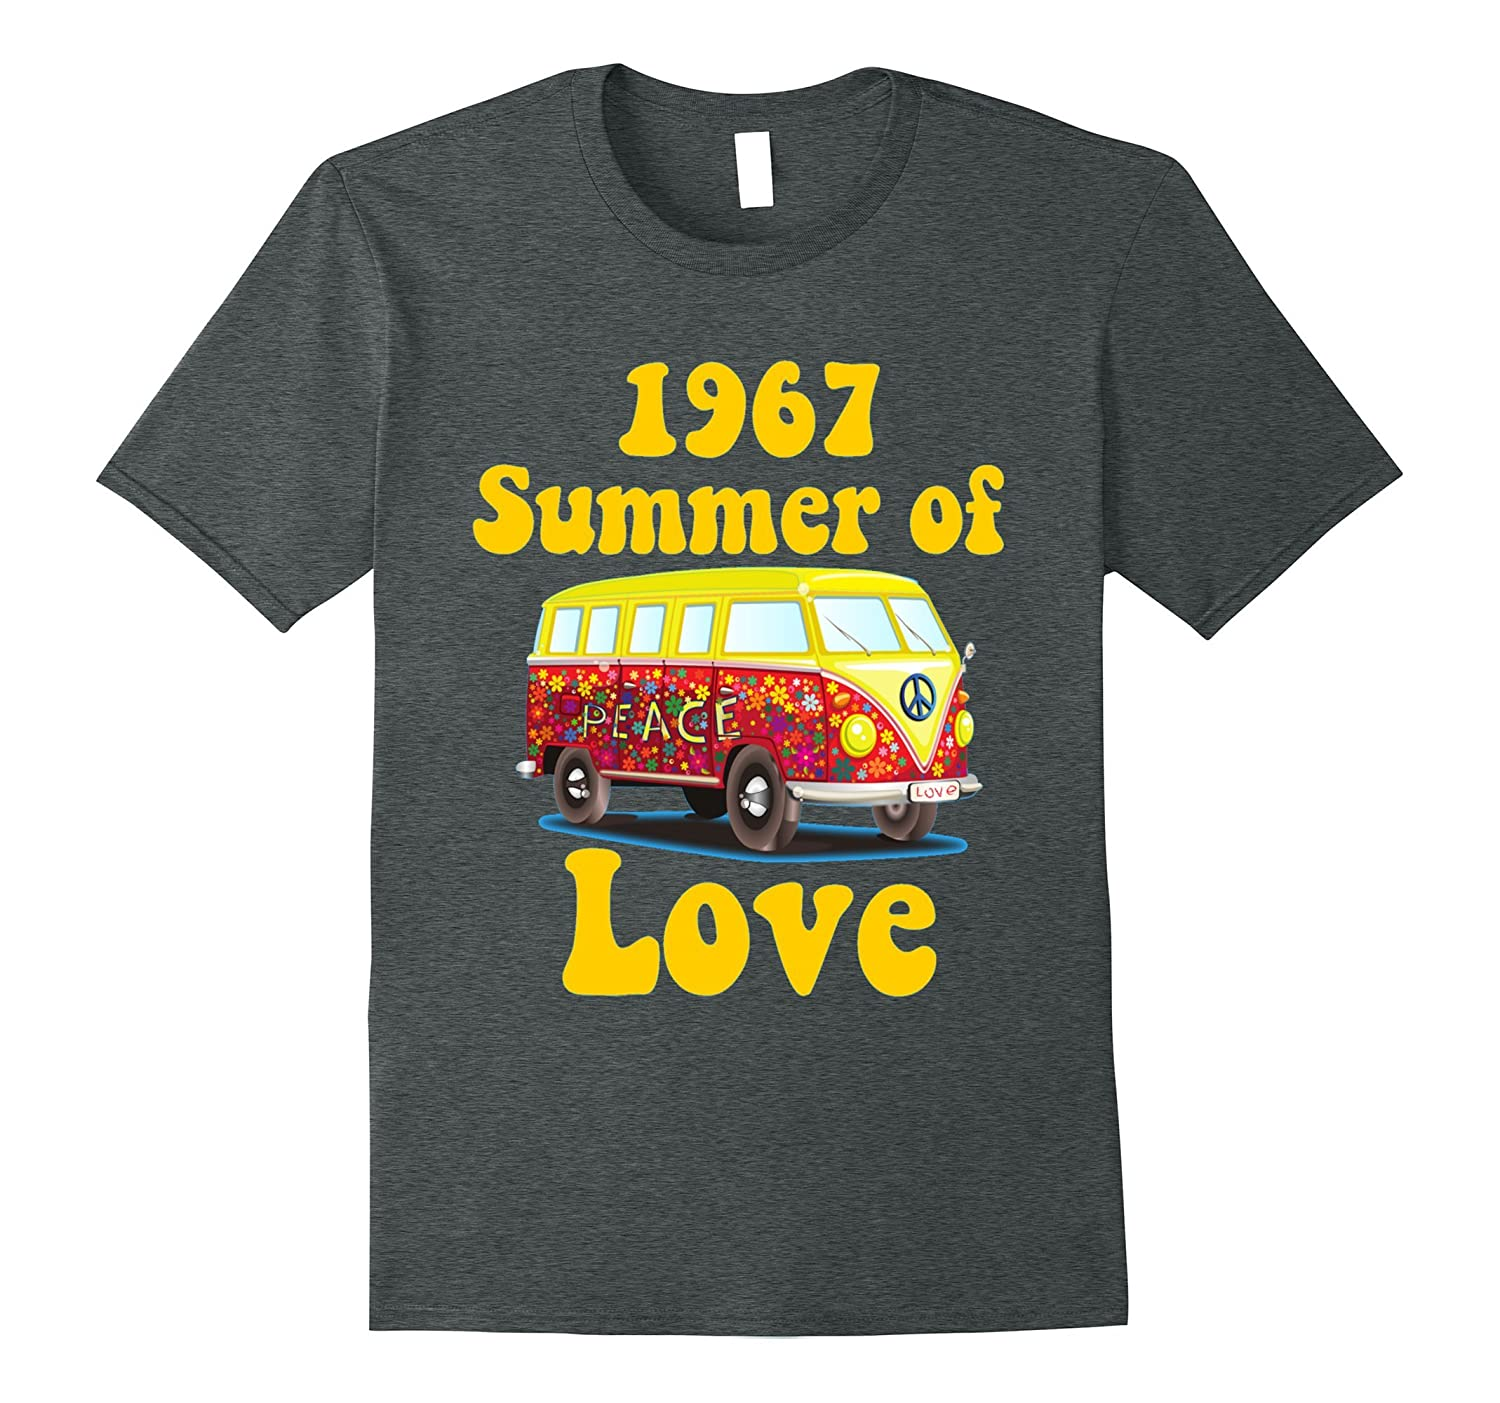 1967 Summer of Love Retro Tees Vintage Sixties Hippie Shirt-T-Shirt